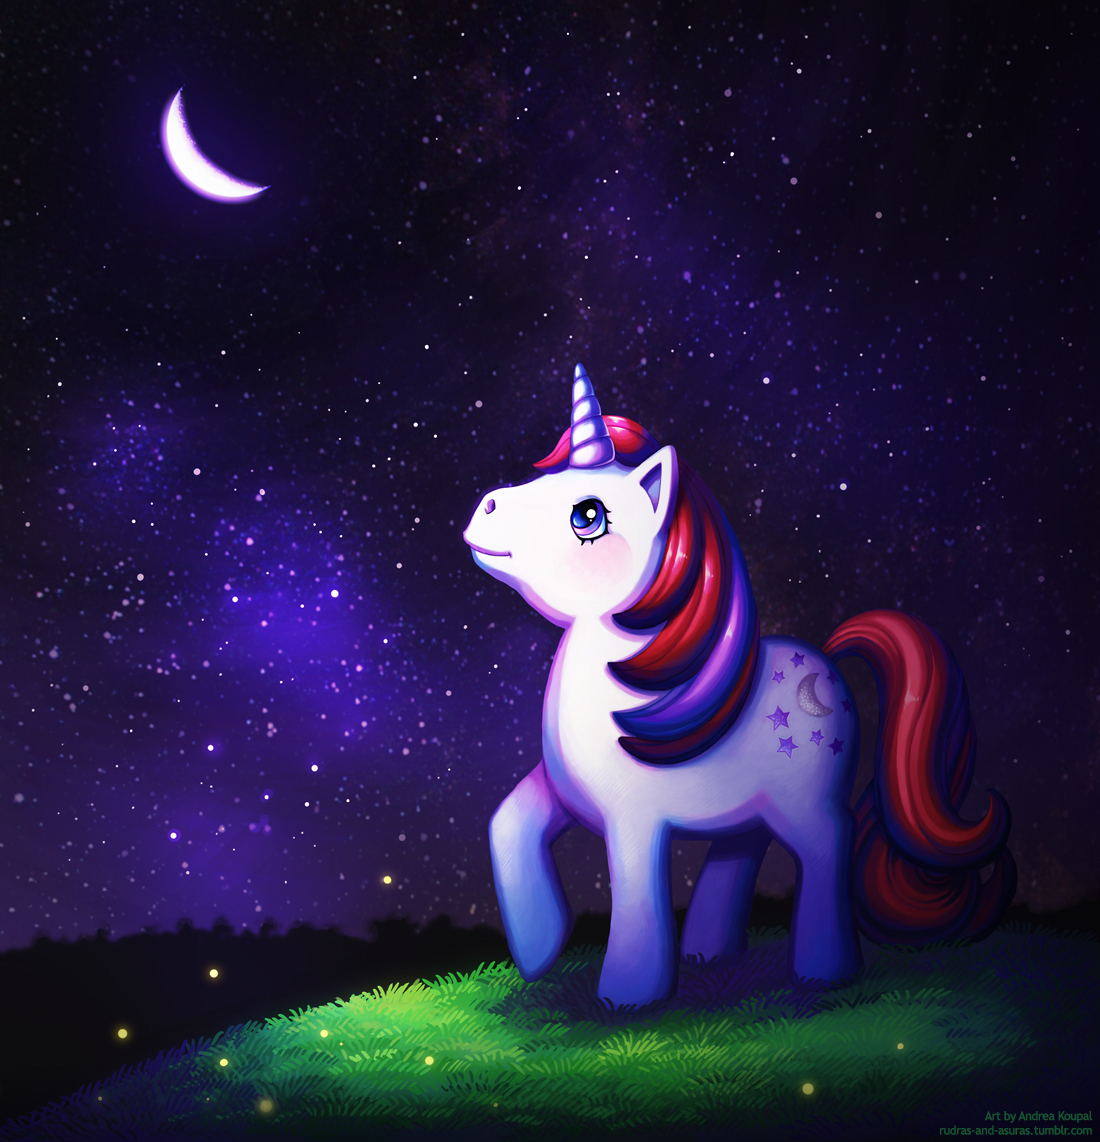 Moondancer by andrea-koupal